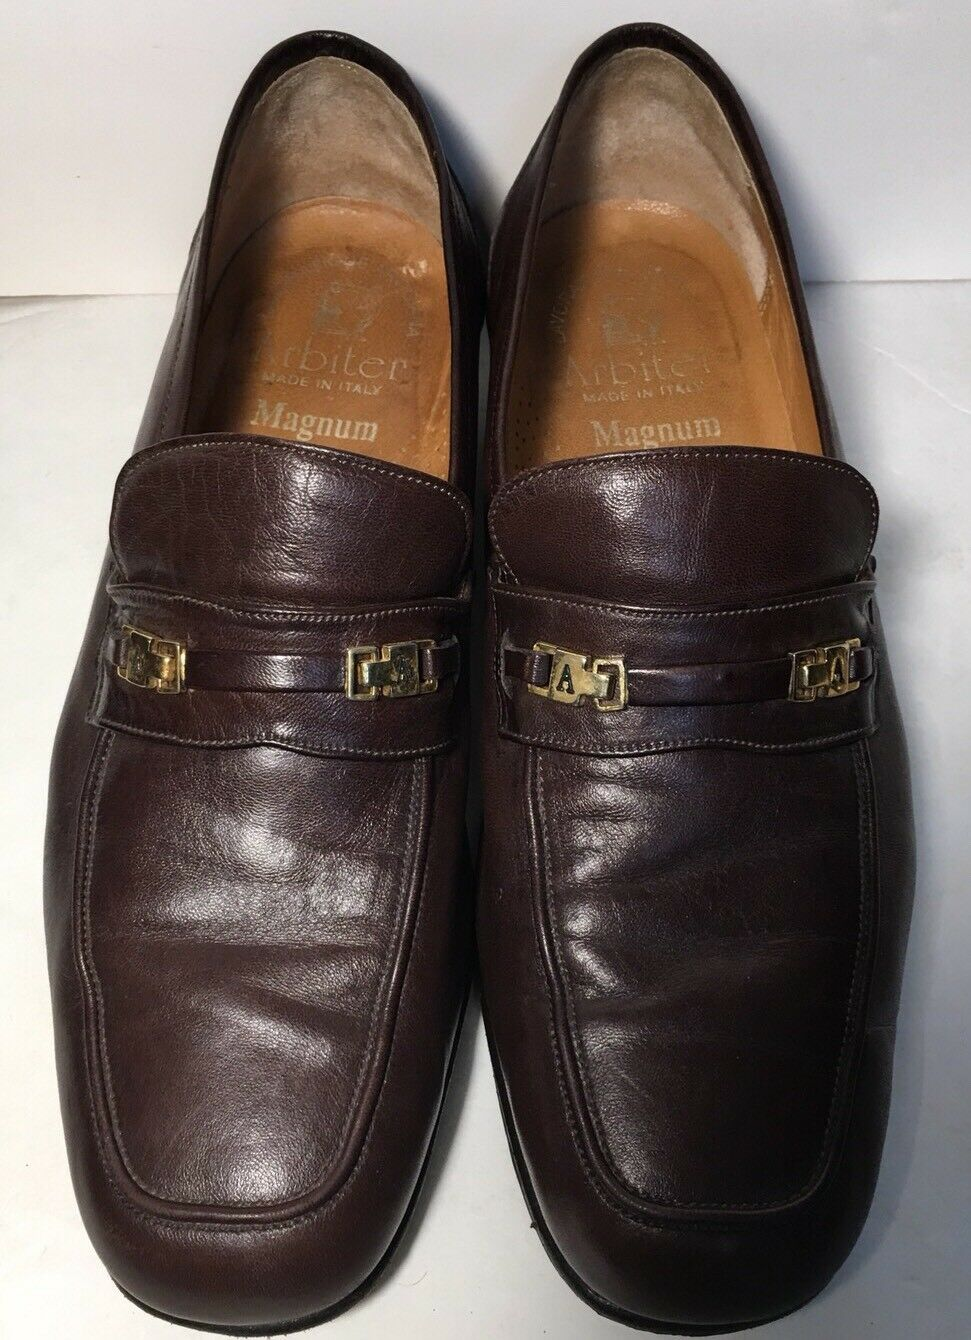 Authentic Arbiter braun Soft Soft Soft Leather Hand Crafted SZ 8.5  Men's schuhe 04bab5